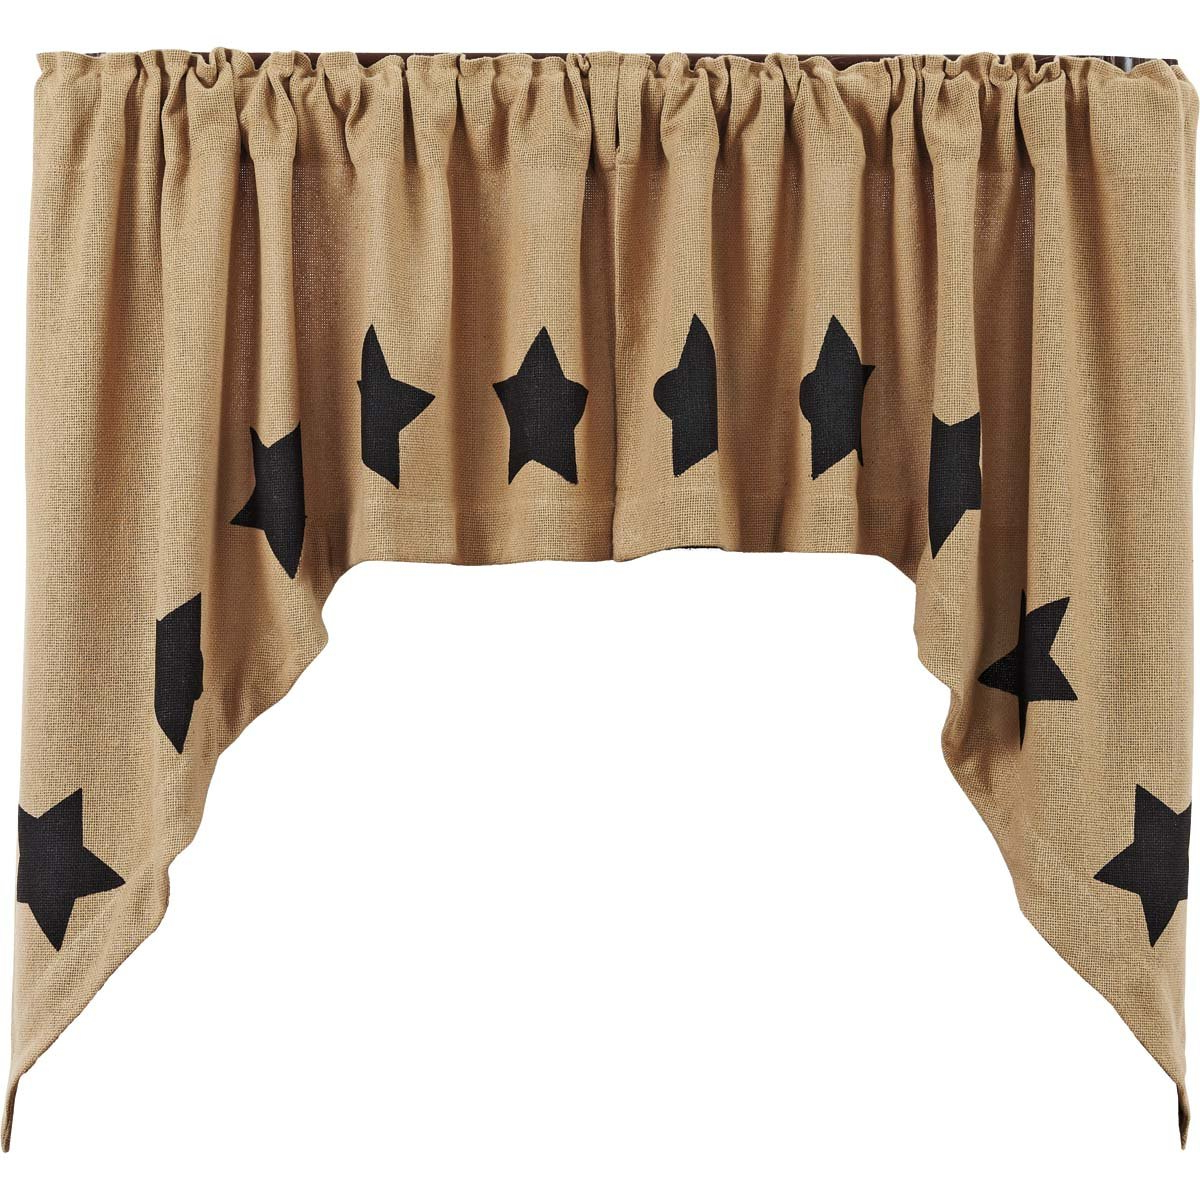 Burlap Swag Valances You'll Love To Have – Recipes With More With Trendy Check Scalloped Swag Sets (View 16 of 20)